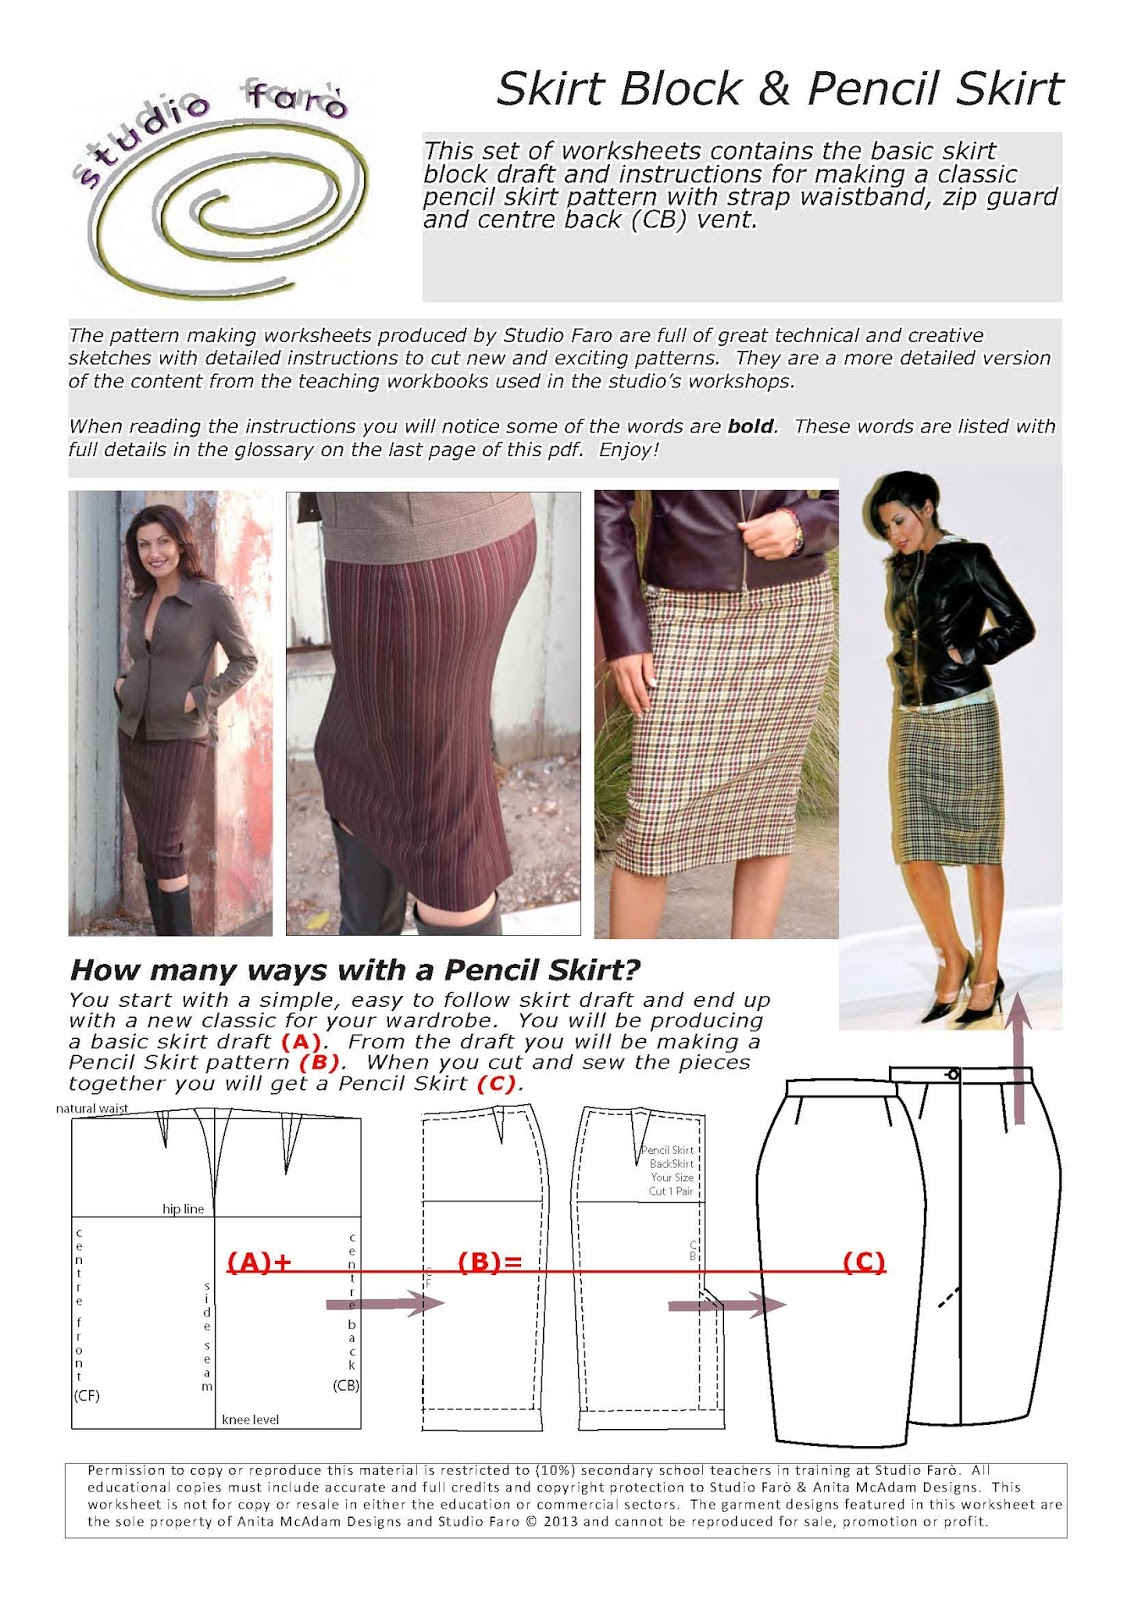 Well Suited Skirt Draft And Pencil Skirt Pattern Worksheet